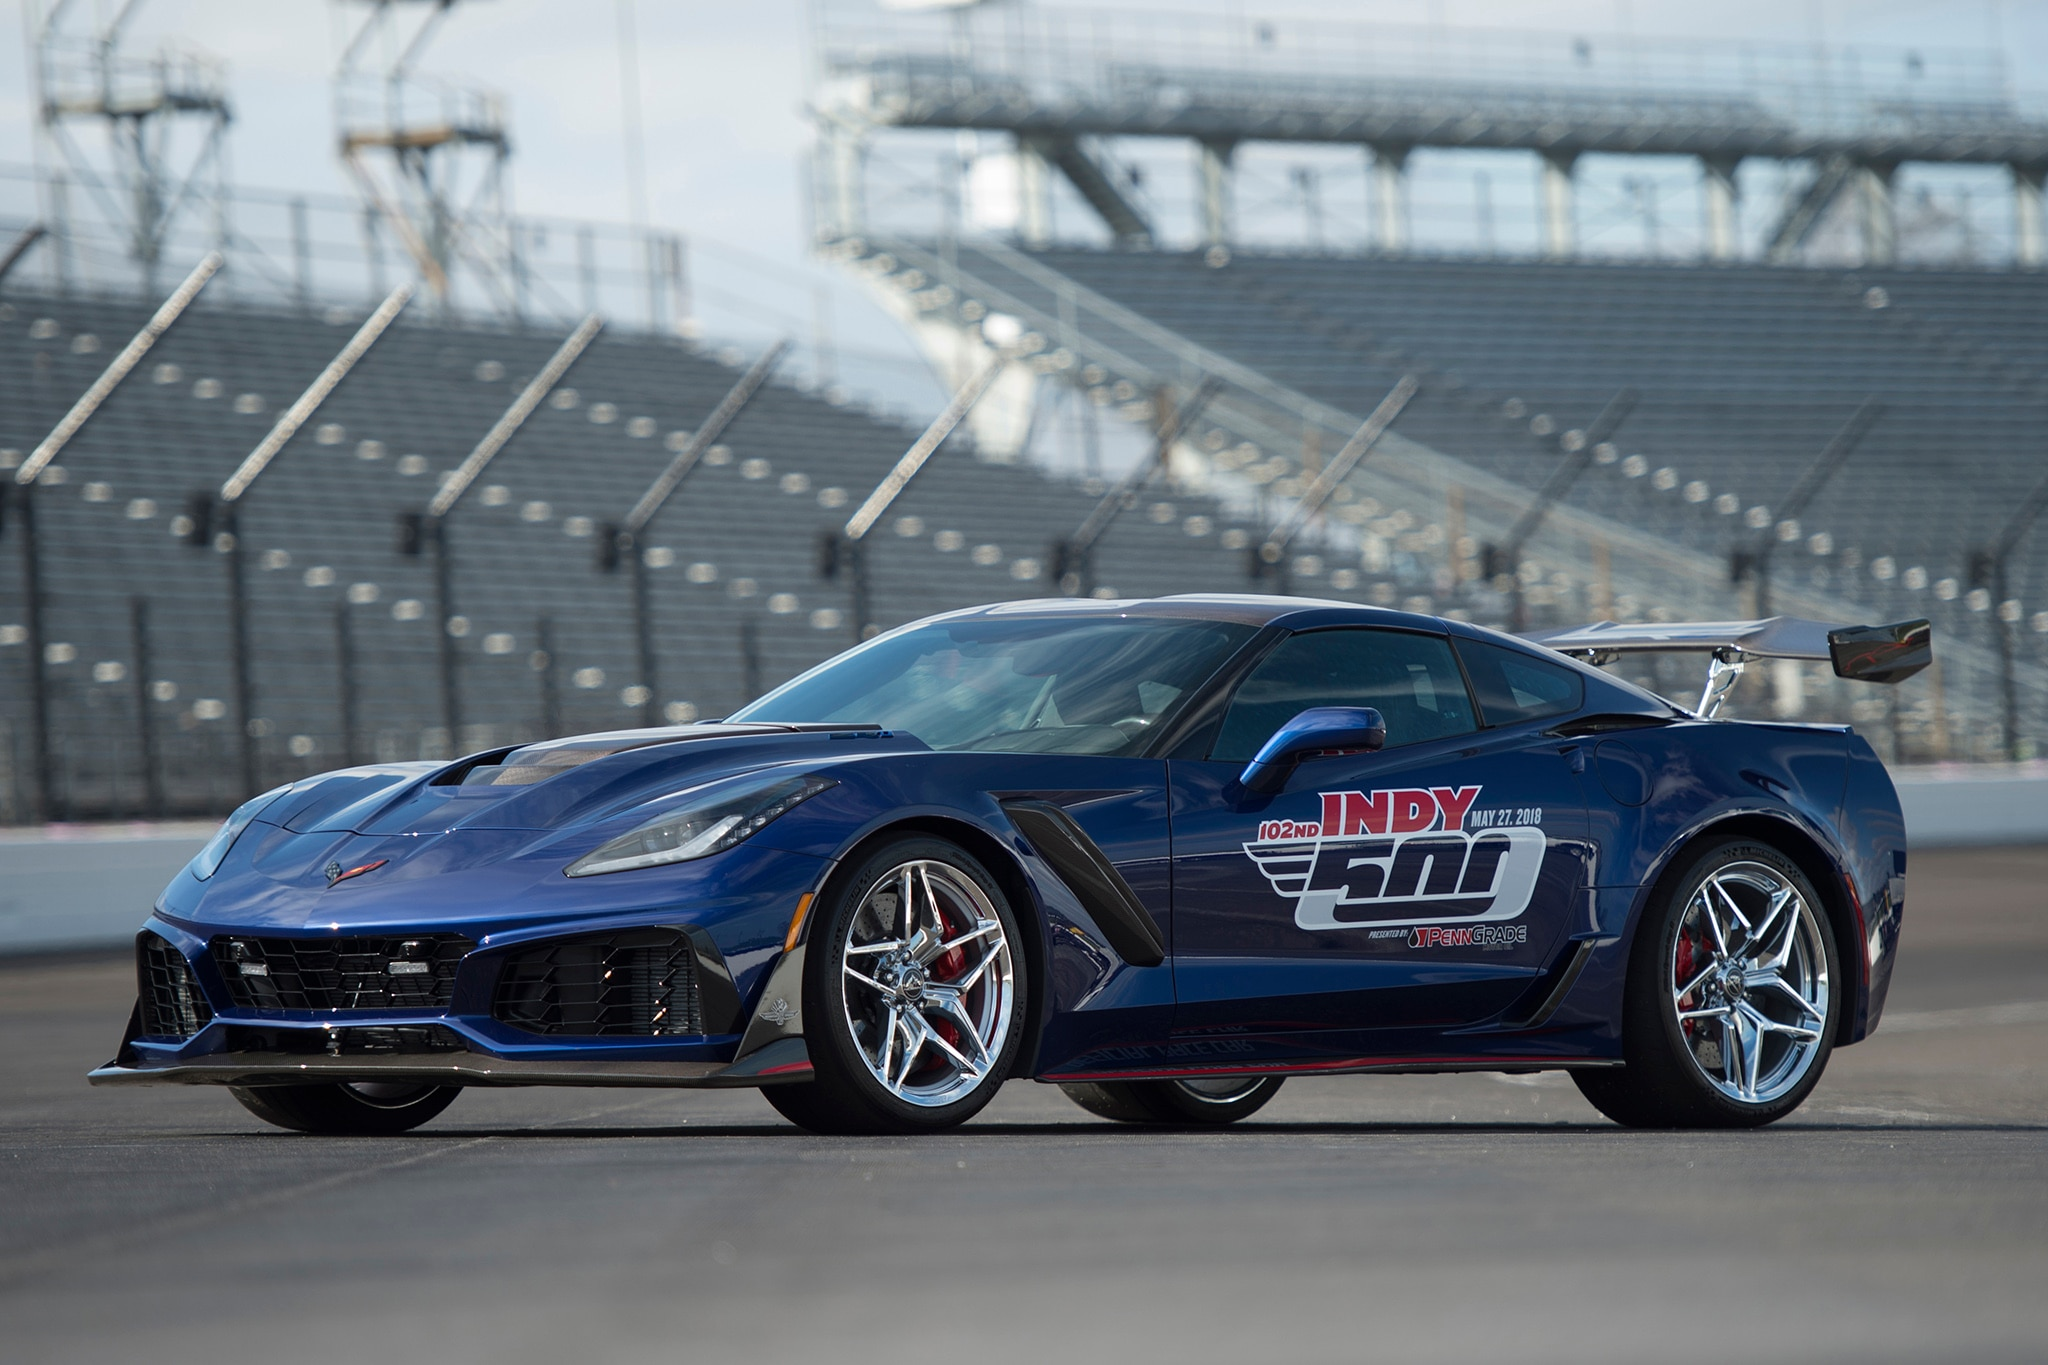 Corvette Named Pace Car For Indy 500